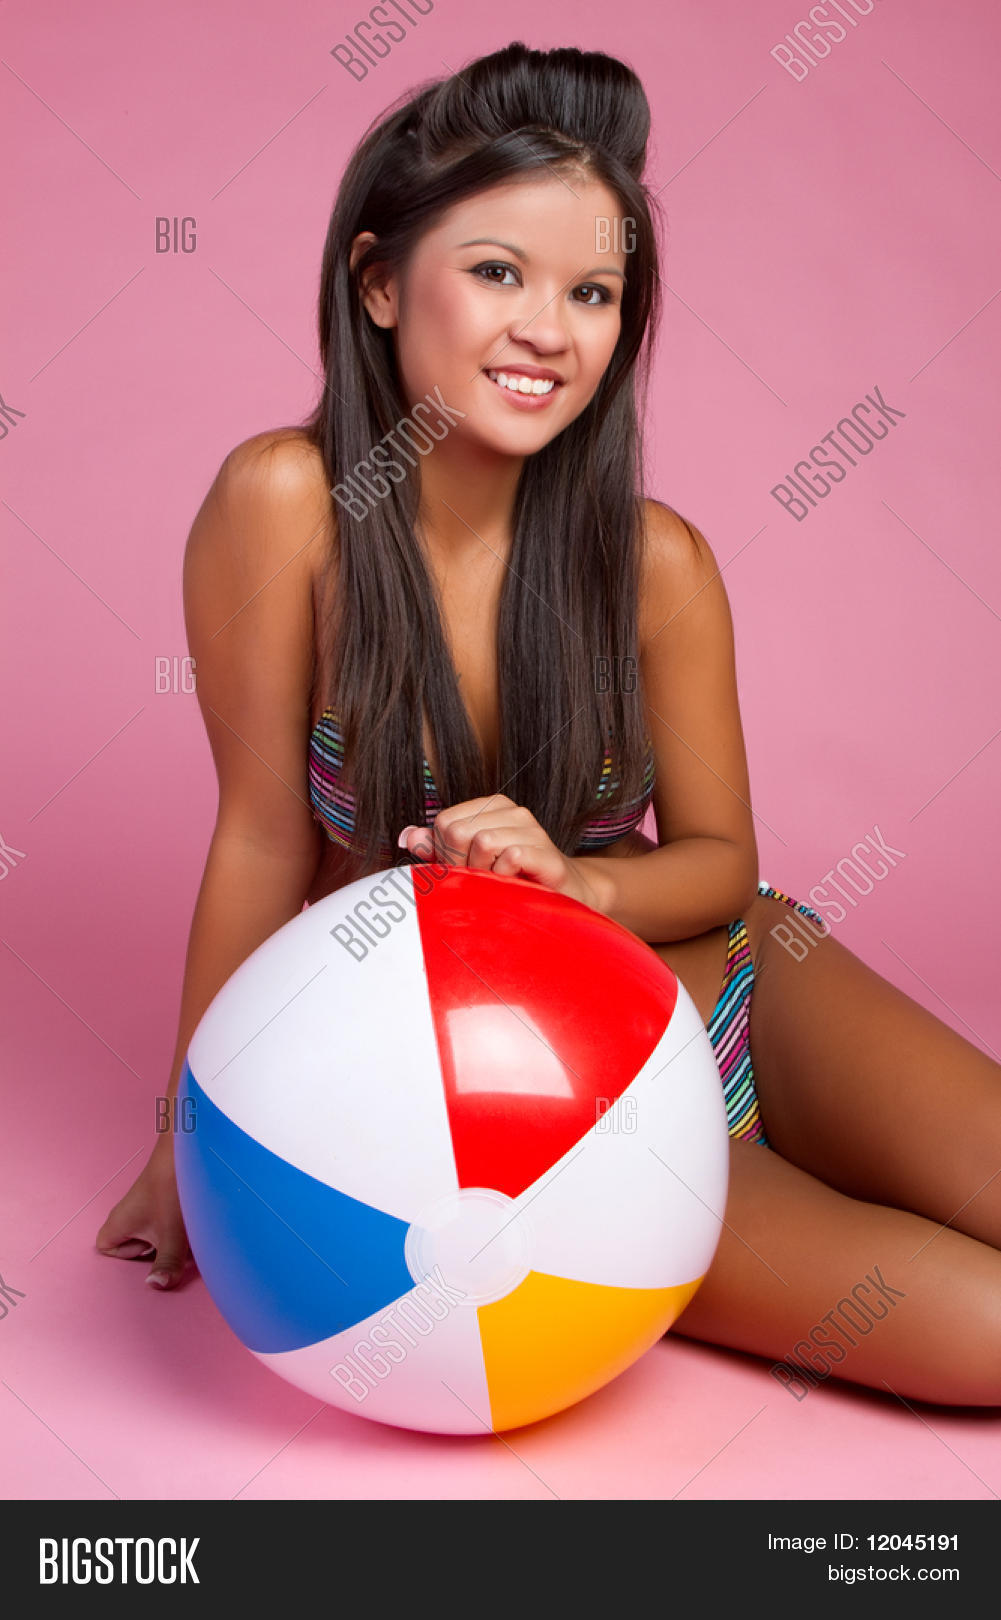 ball asian girl personals I know japanese girls are incredibly cute you really want to date and get laid but you have to be careful to avoid having problems in the future not all j.